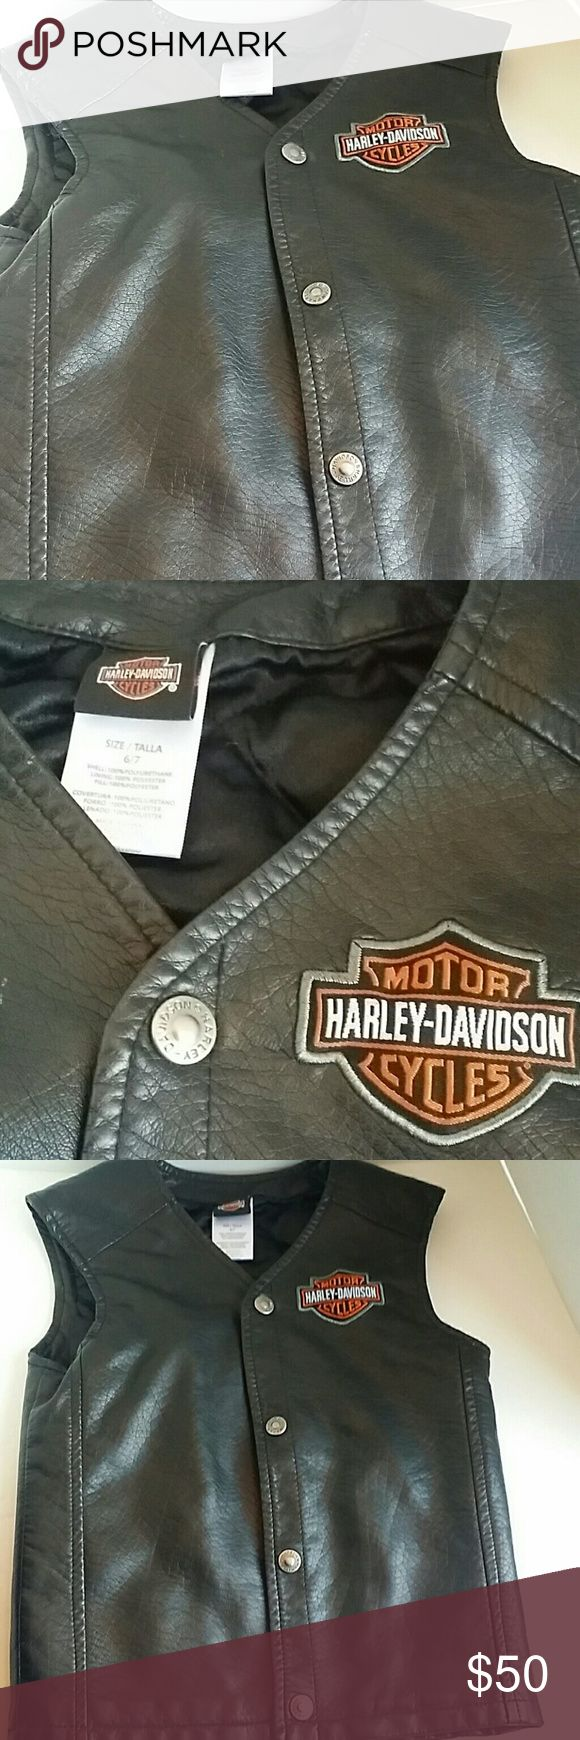 Harley Davidson Vest Almost new. A gift for my son but was too small. He wore couple of times. Almost brand new. Harley-Davidson Jackets & Coats Vests